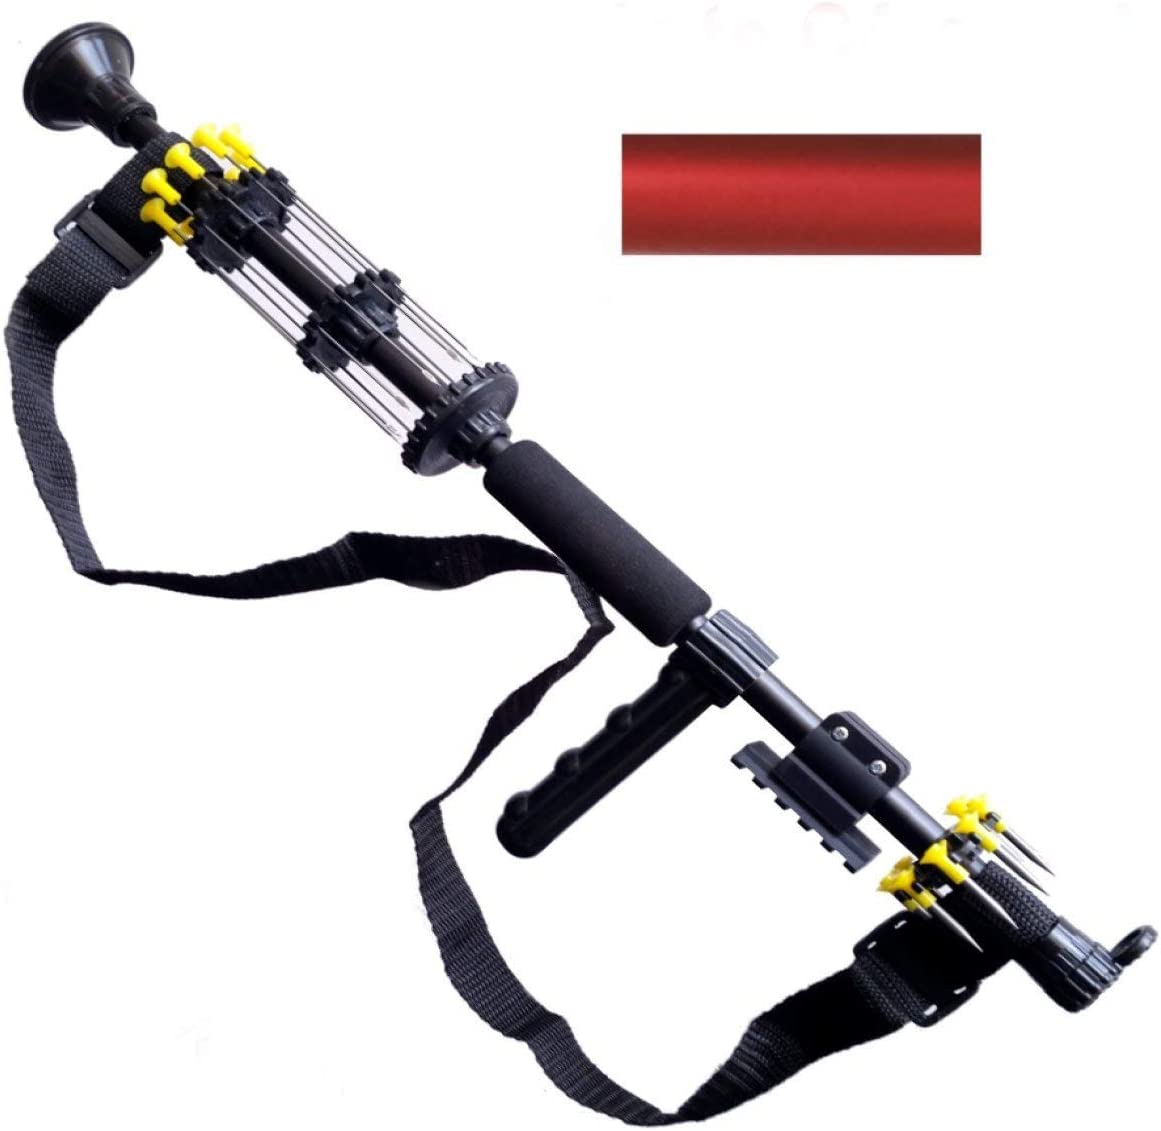 Venom Blowguns Made in USA 18 .40 Cal Velocity Blowgun Black Blue RED or Green CAMMO with 12 Sharp Target Darts and 8 Stunners